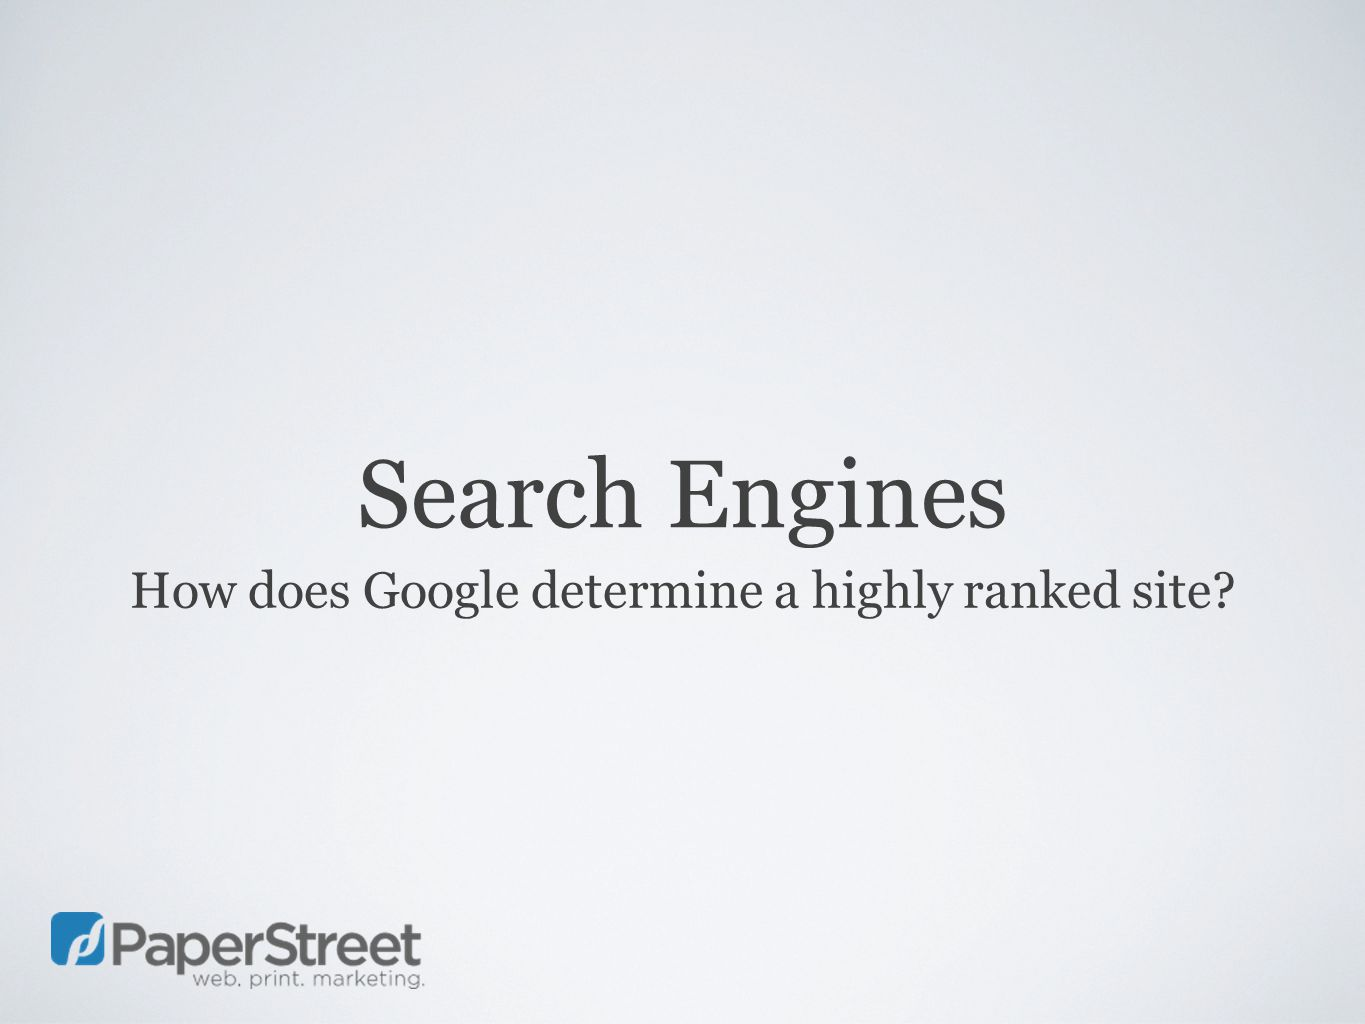 Search Engines How does Google determine a highly ranked site